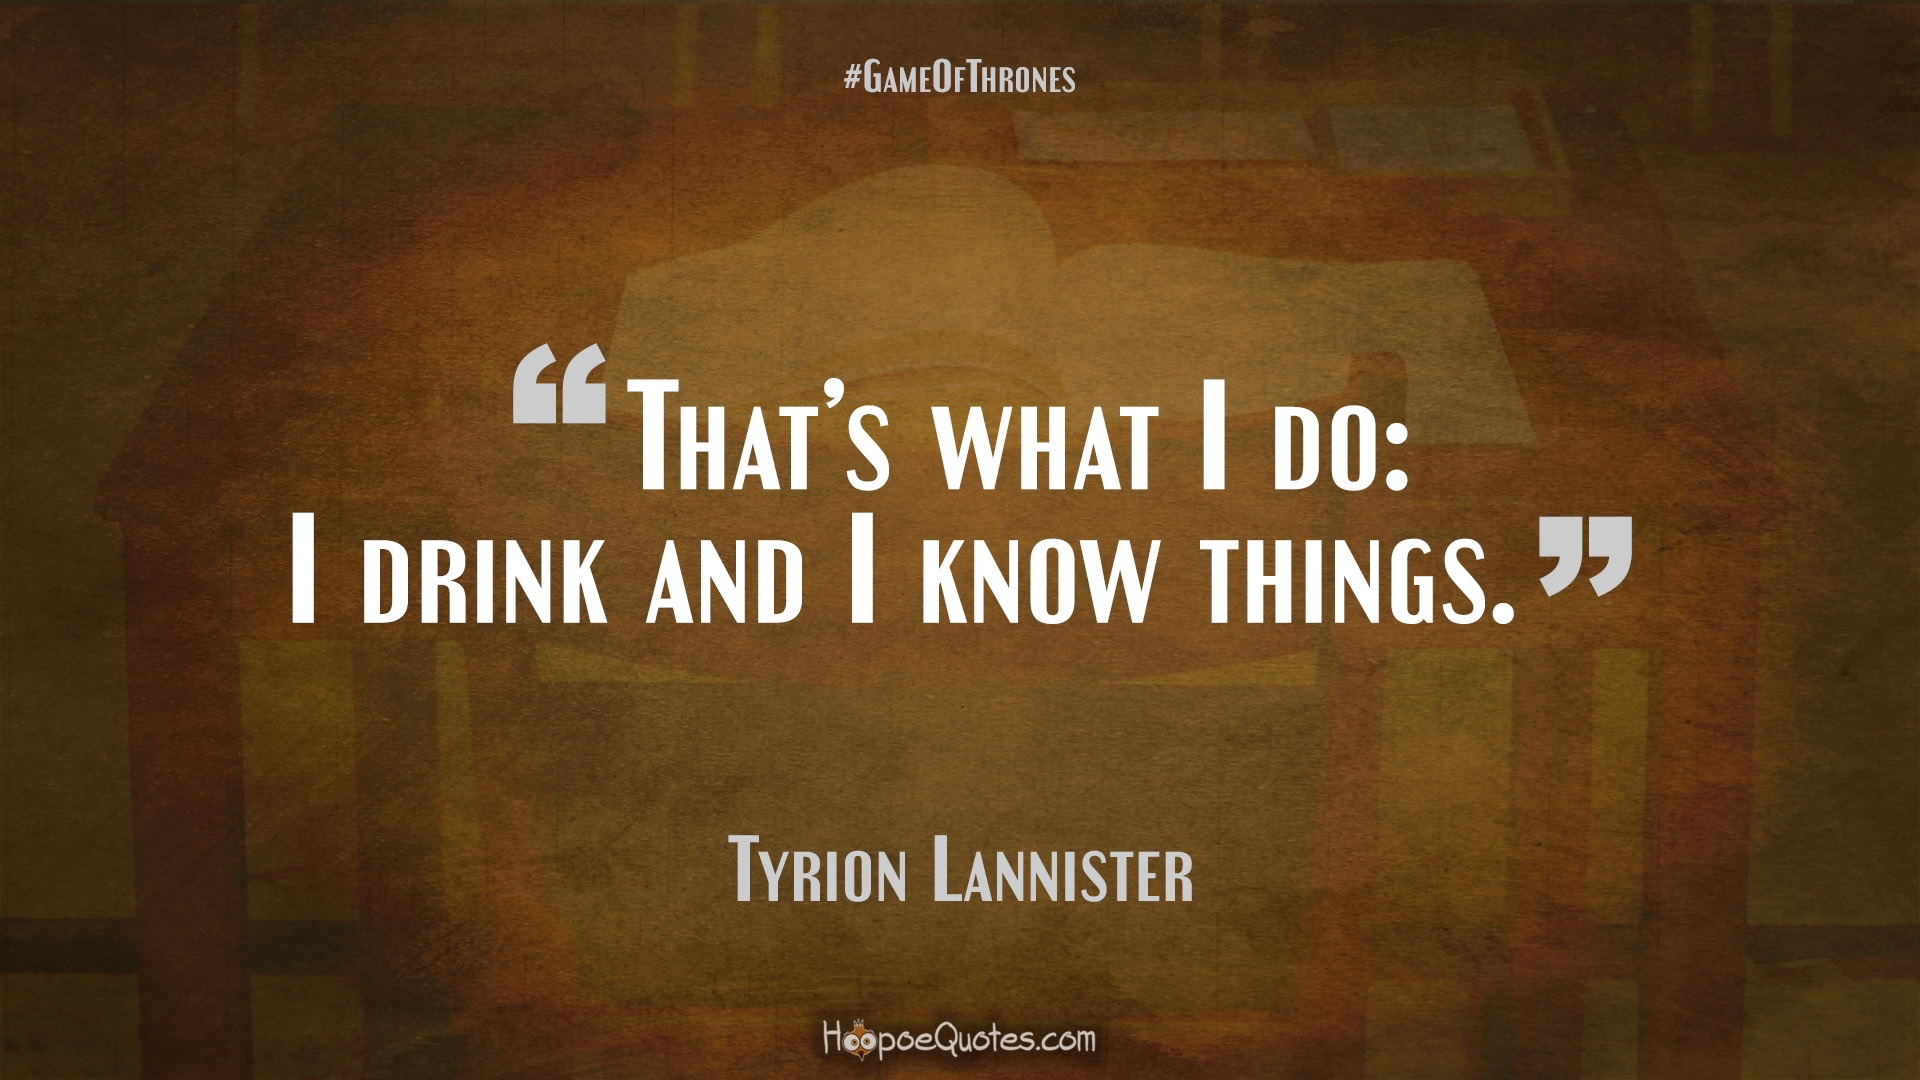 Tyrion Lannister Quotes Hd Wallpaper Thats What I Do I Drink And I Know Things Hoopoequotes